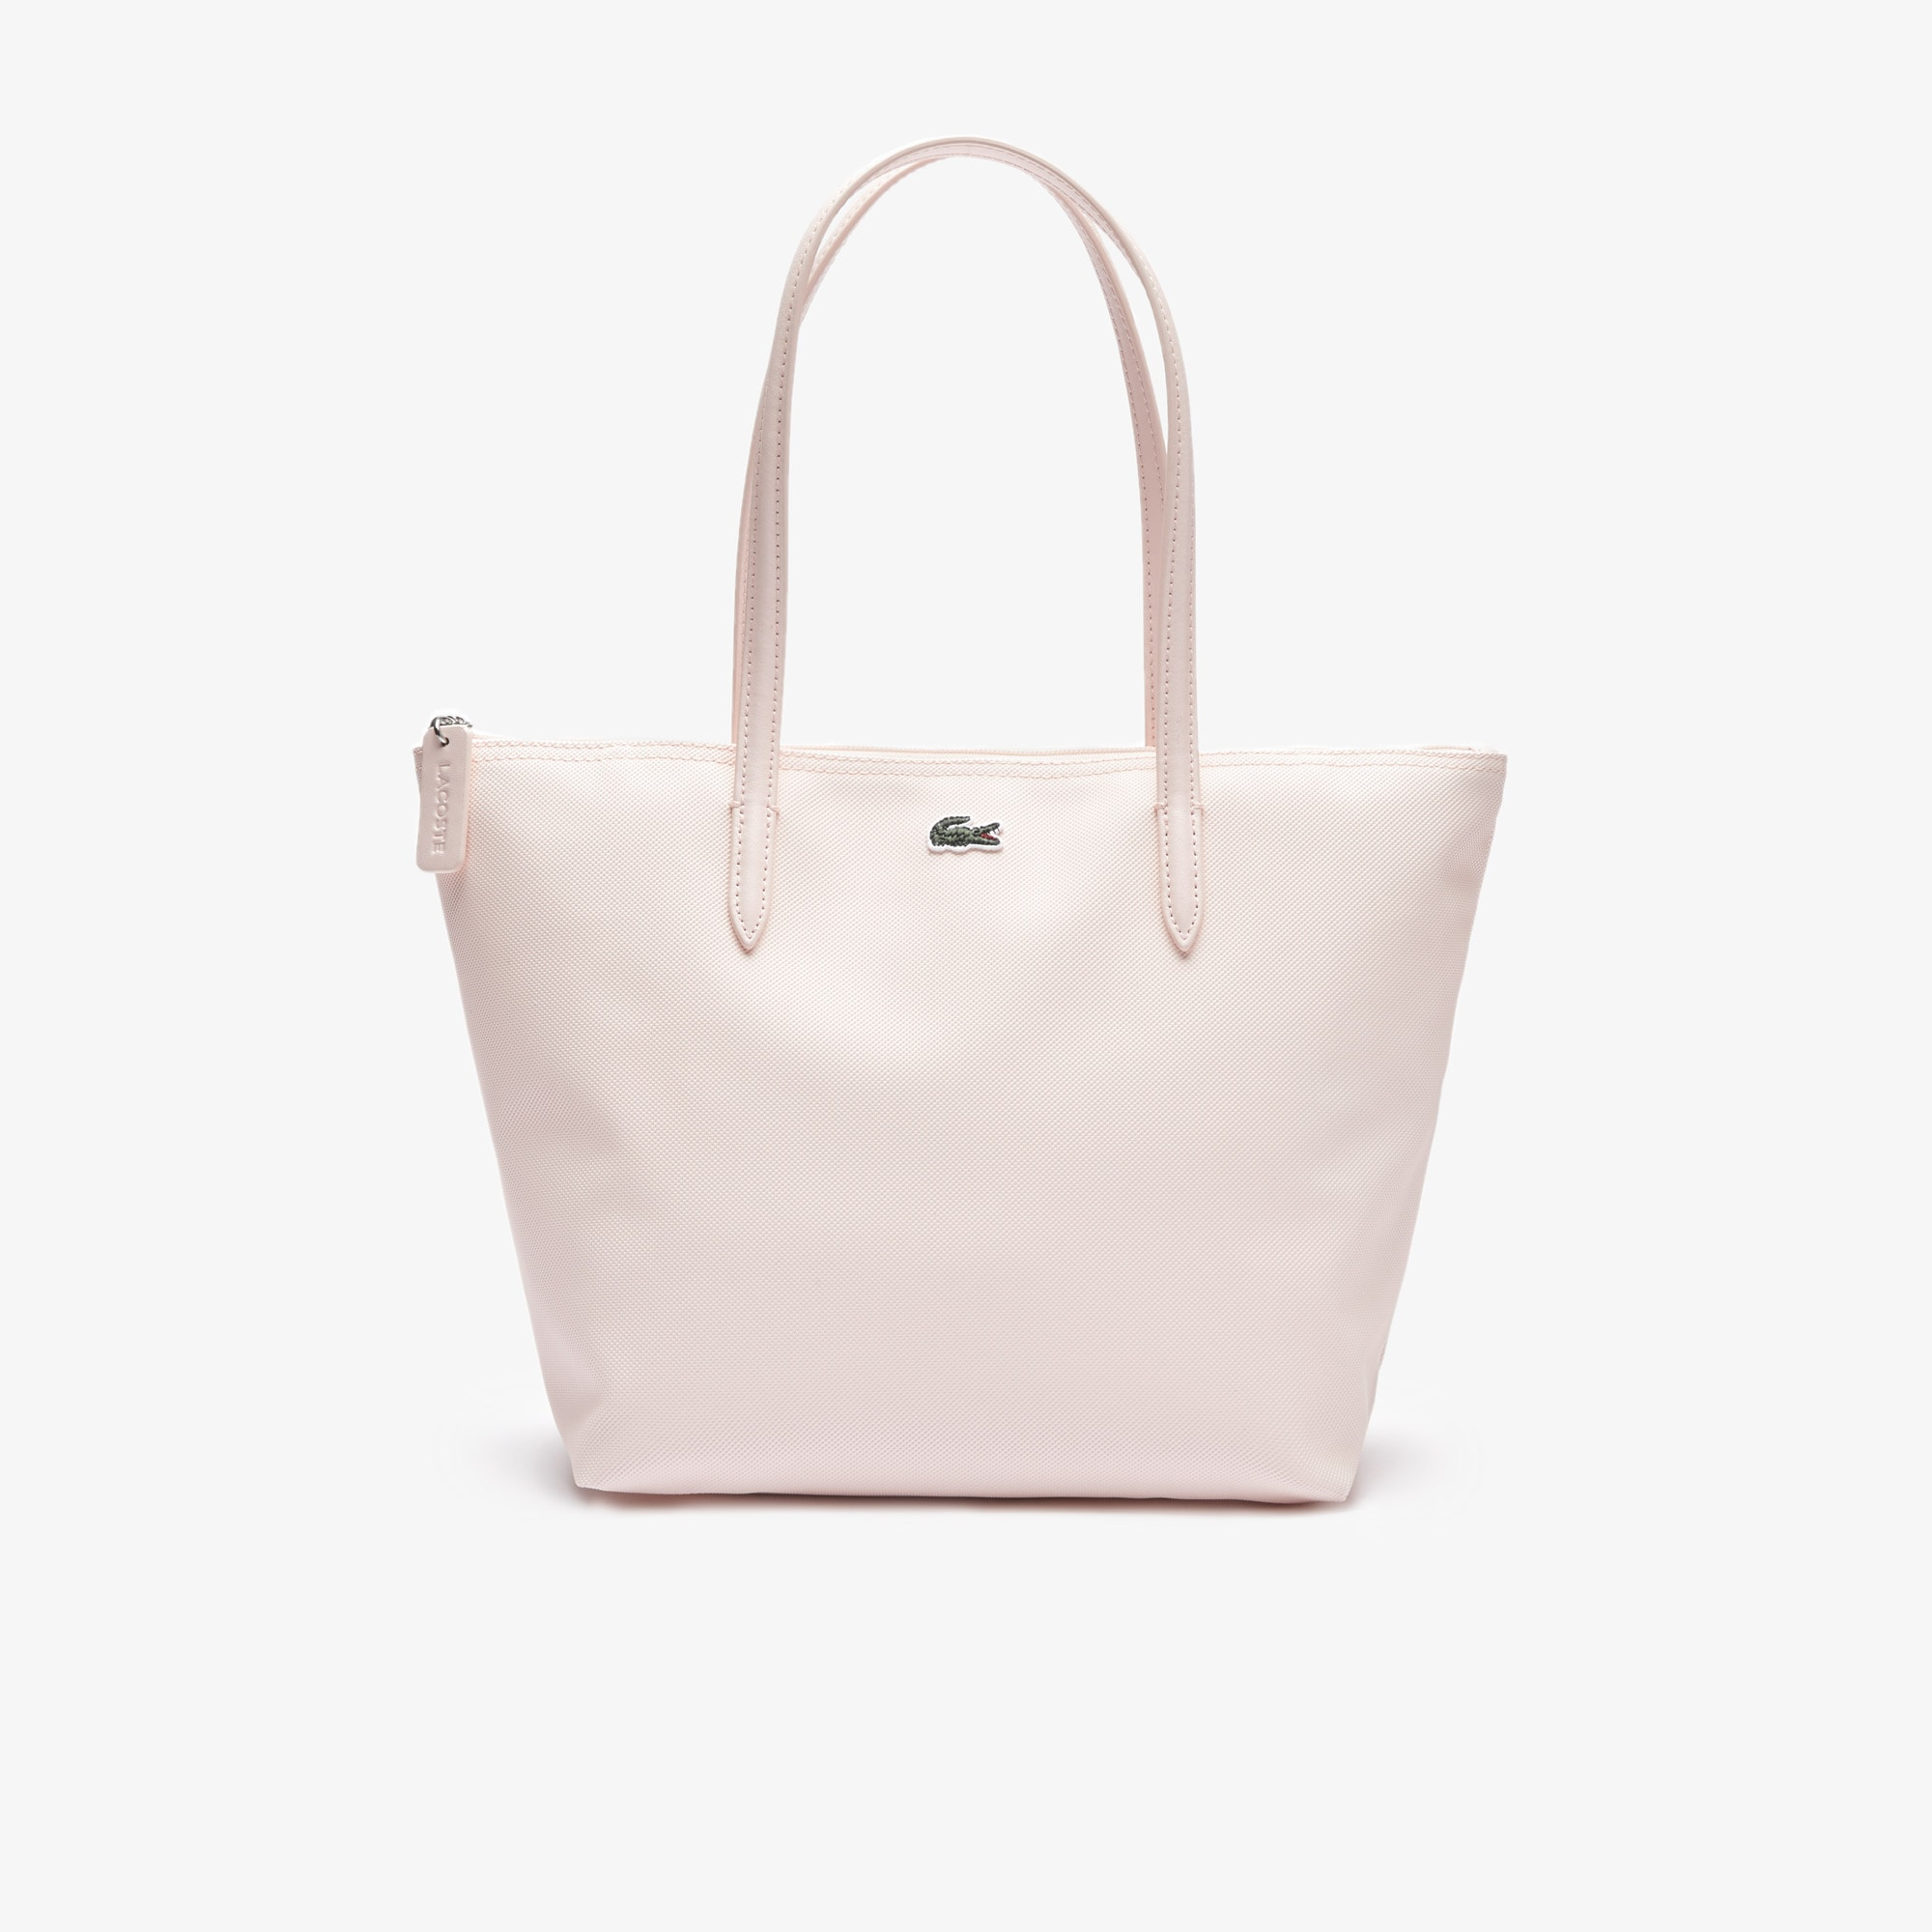 Leather CollectionWomen's Bagsamp; Lacoste Goods Handbags Aq5RL34j